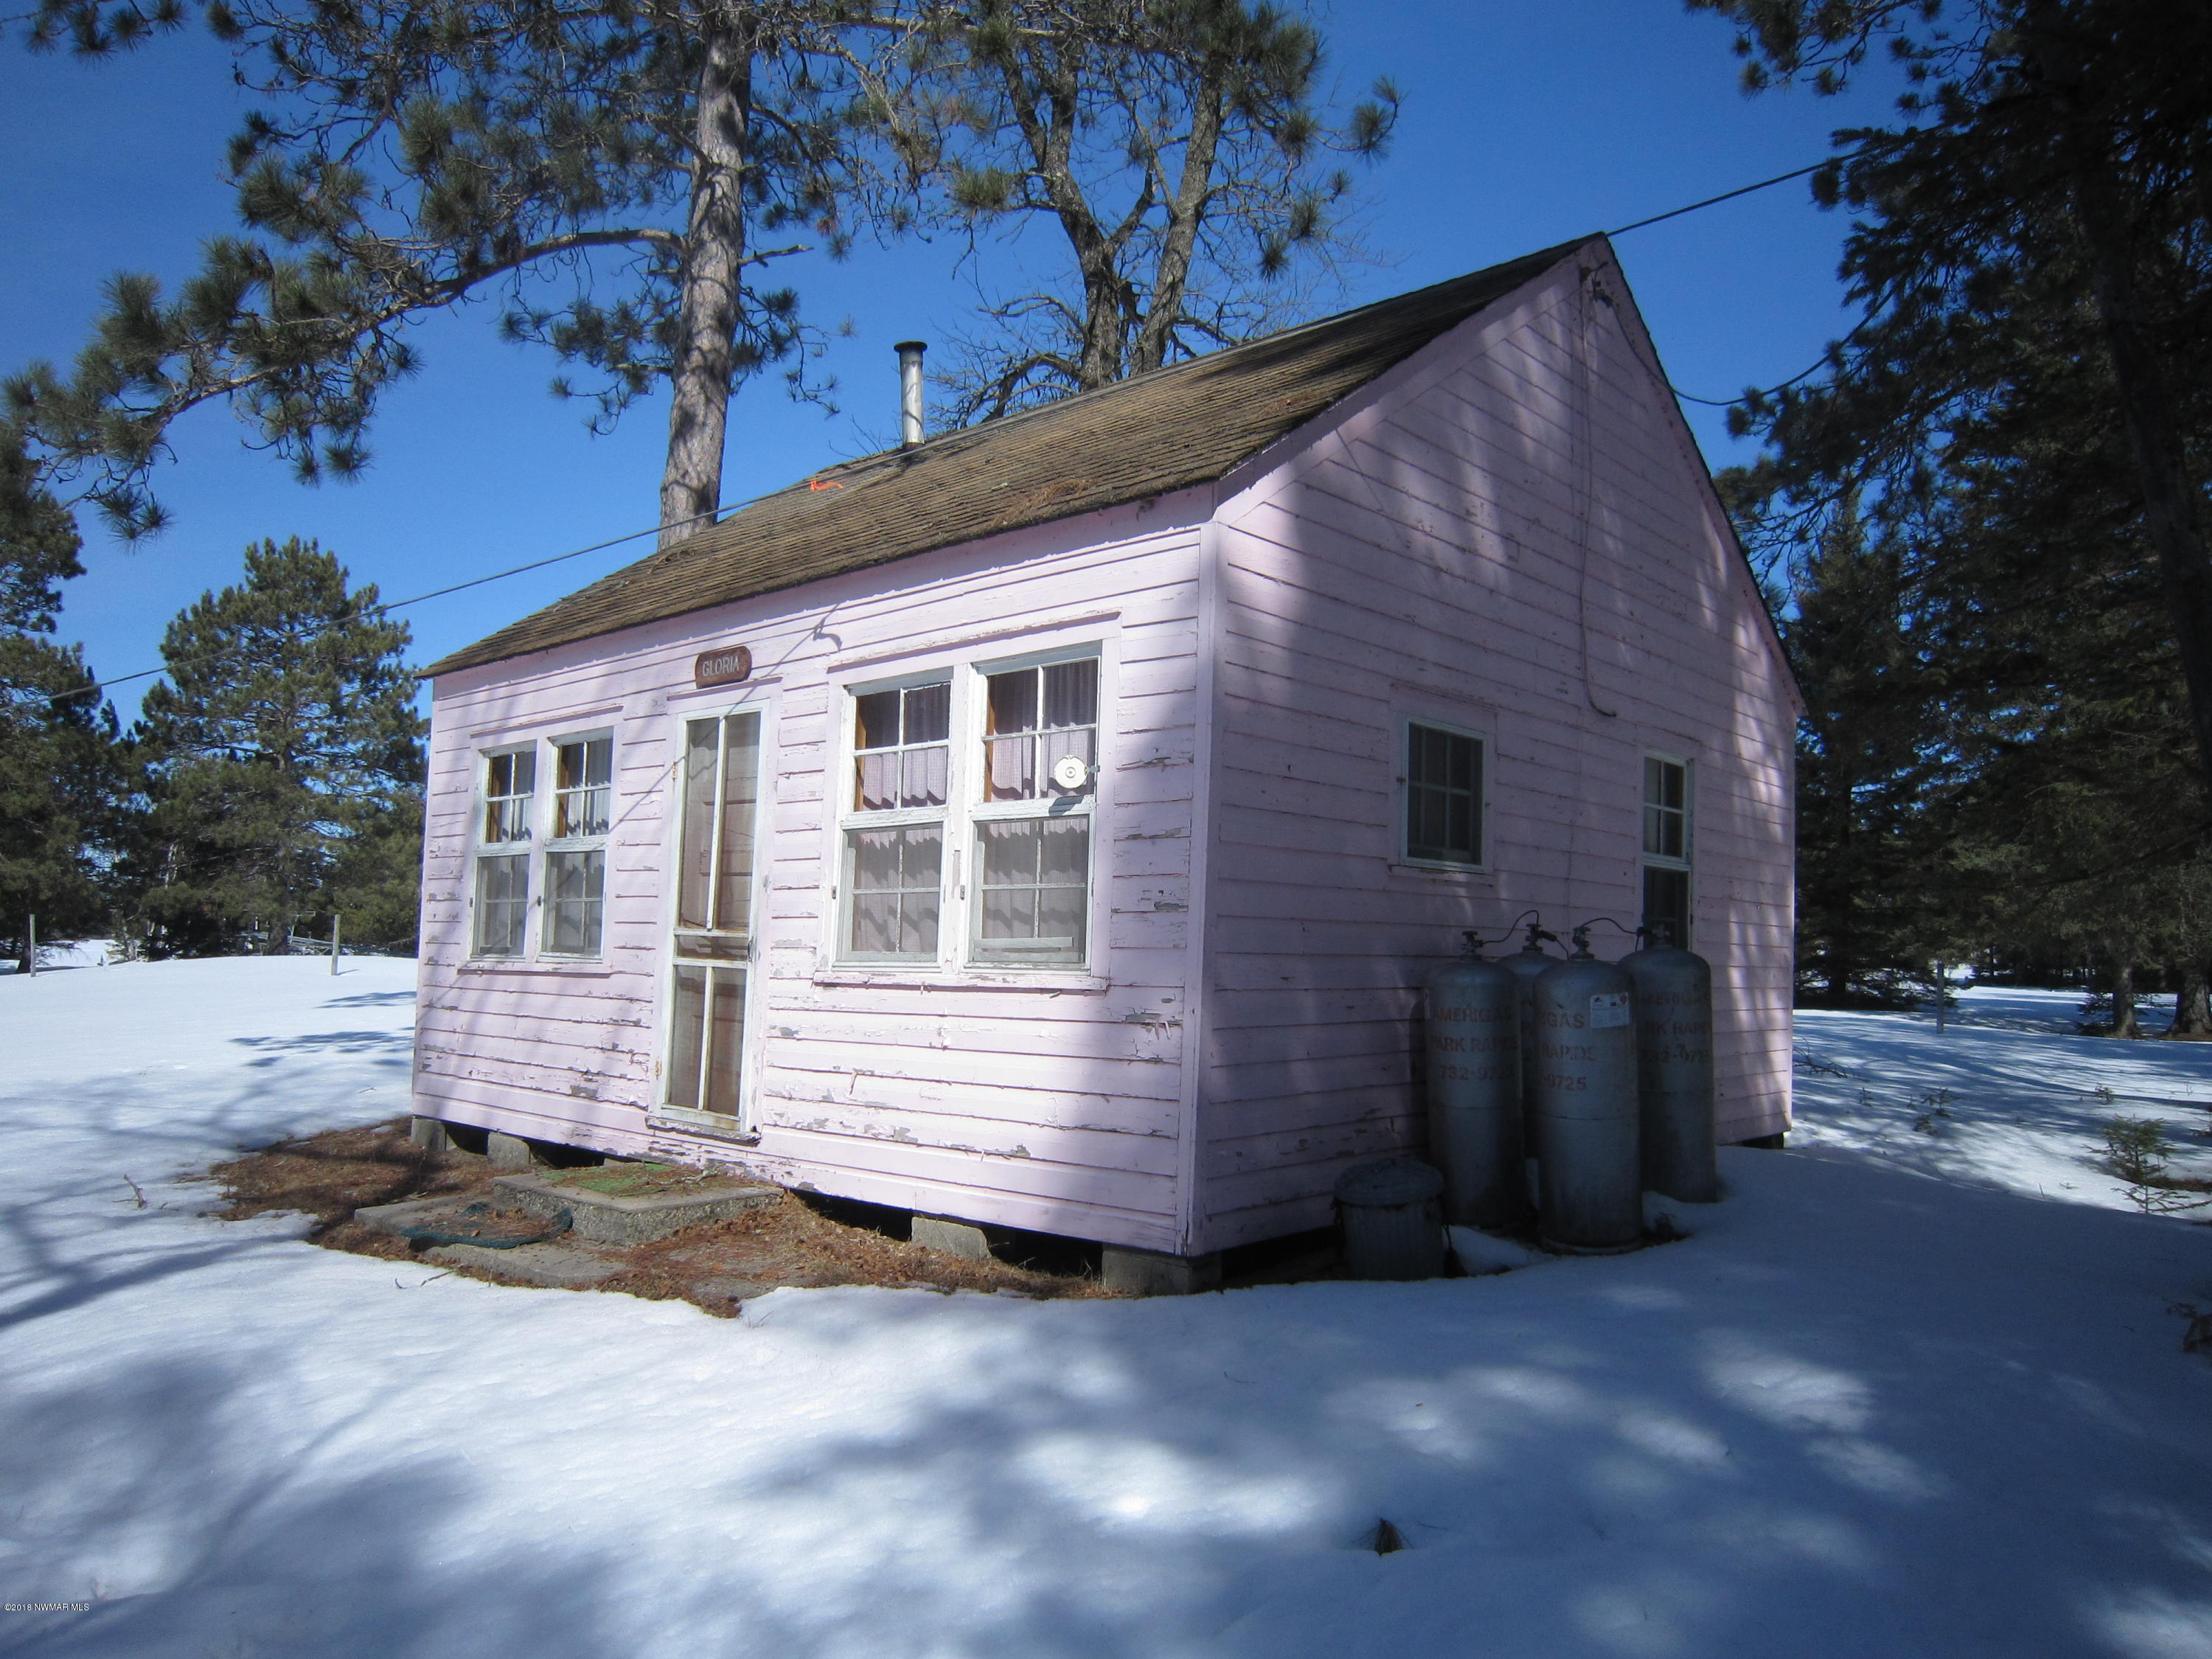 1 of 3 old cabins